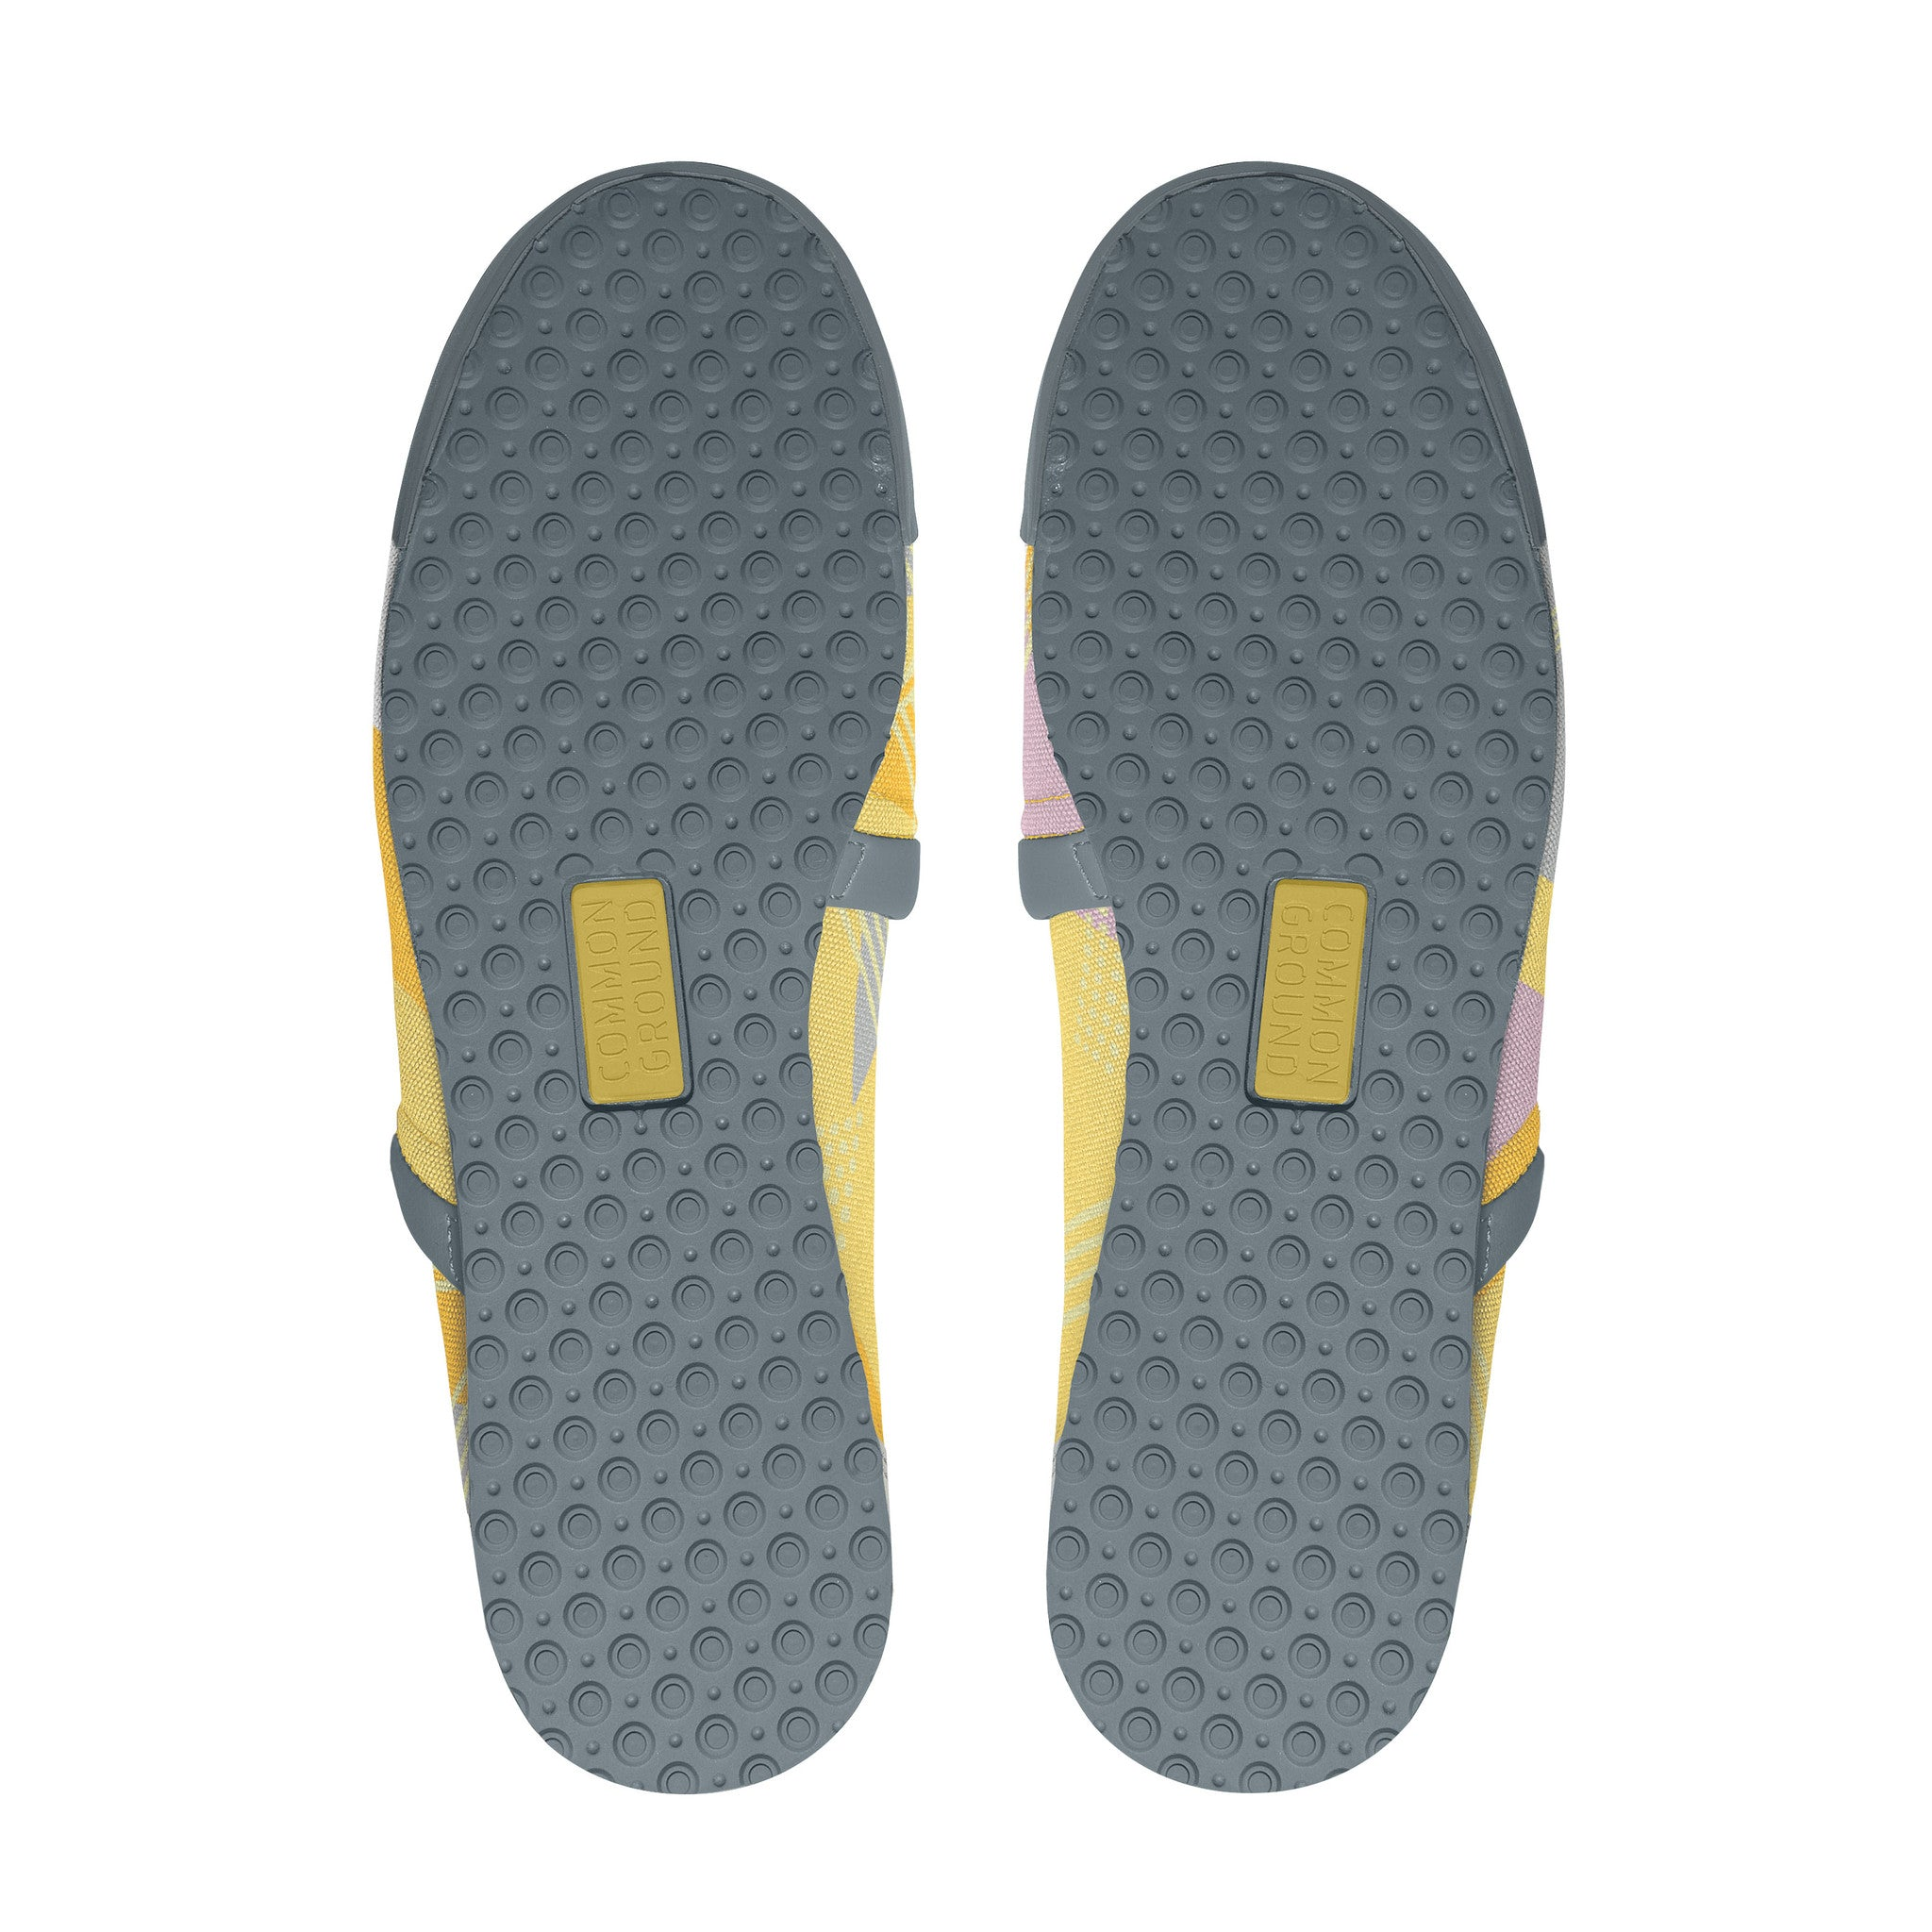 Goldfinch - Common Ground Footwear Shoes Bottom View